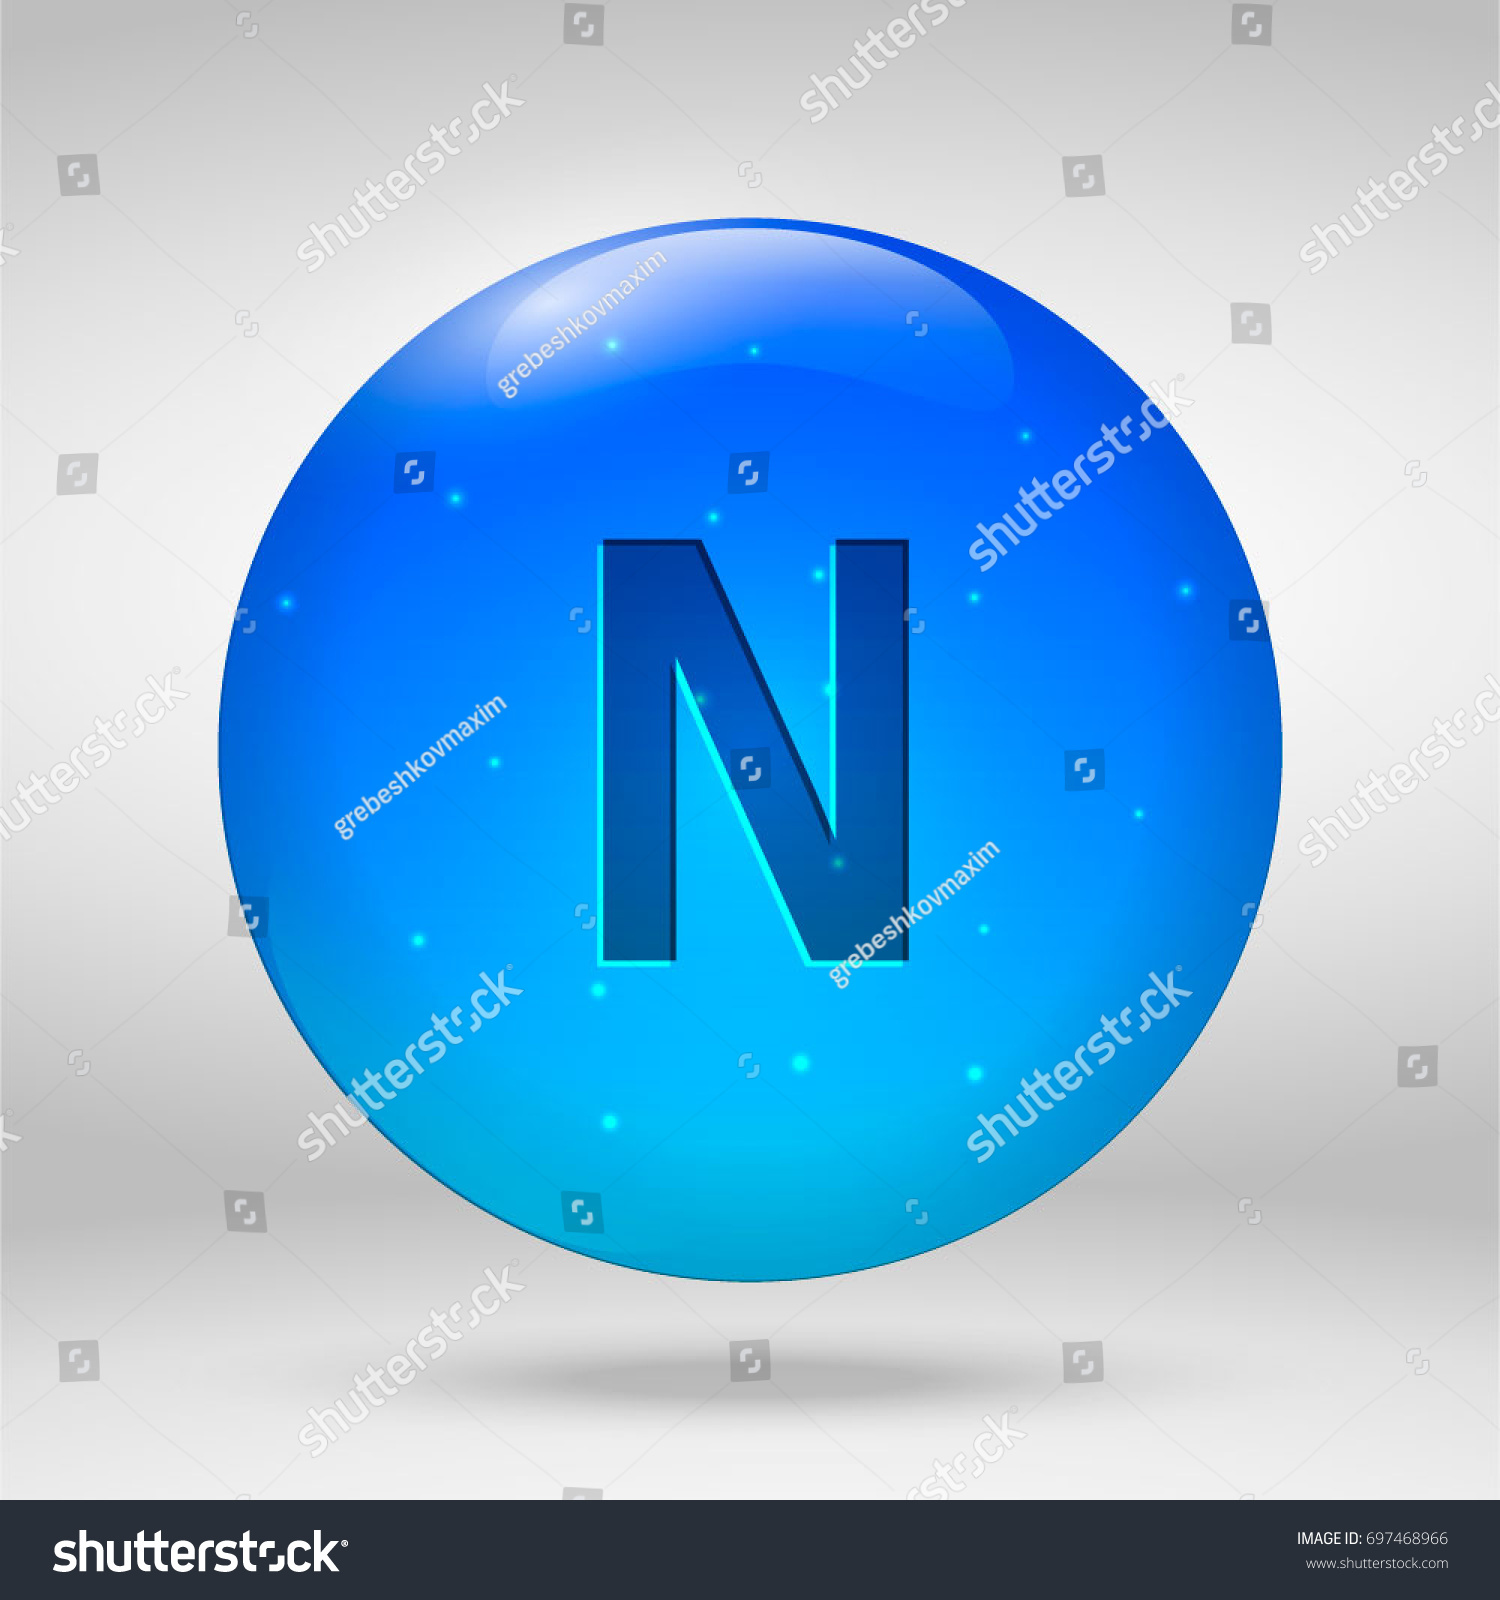 Periodic table for nitrogen image collections periodic table images nitrogen element periodic table vector 3d stock vector 697468966 nitrogen element of the periodic table vector gamestrikefo Choice Image